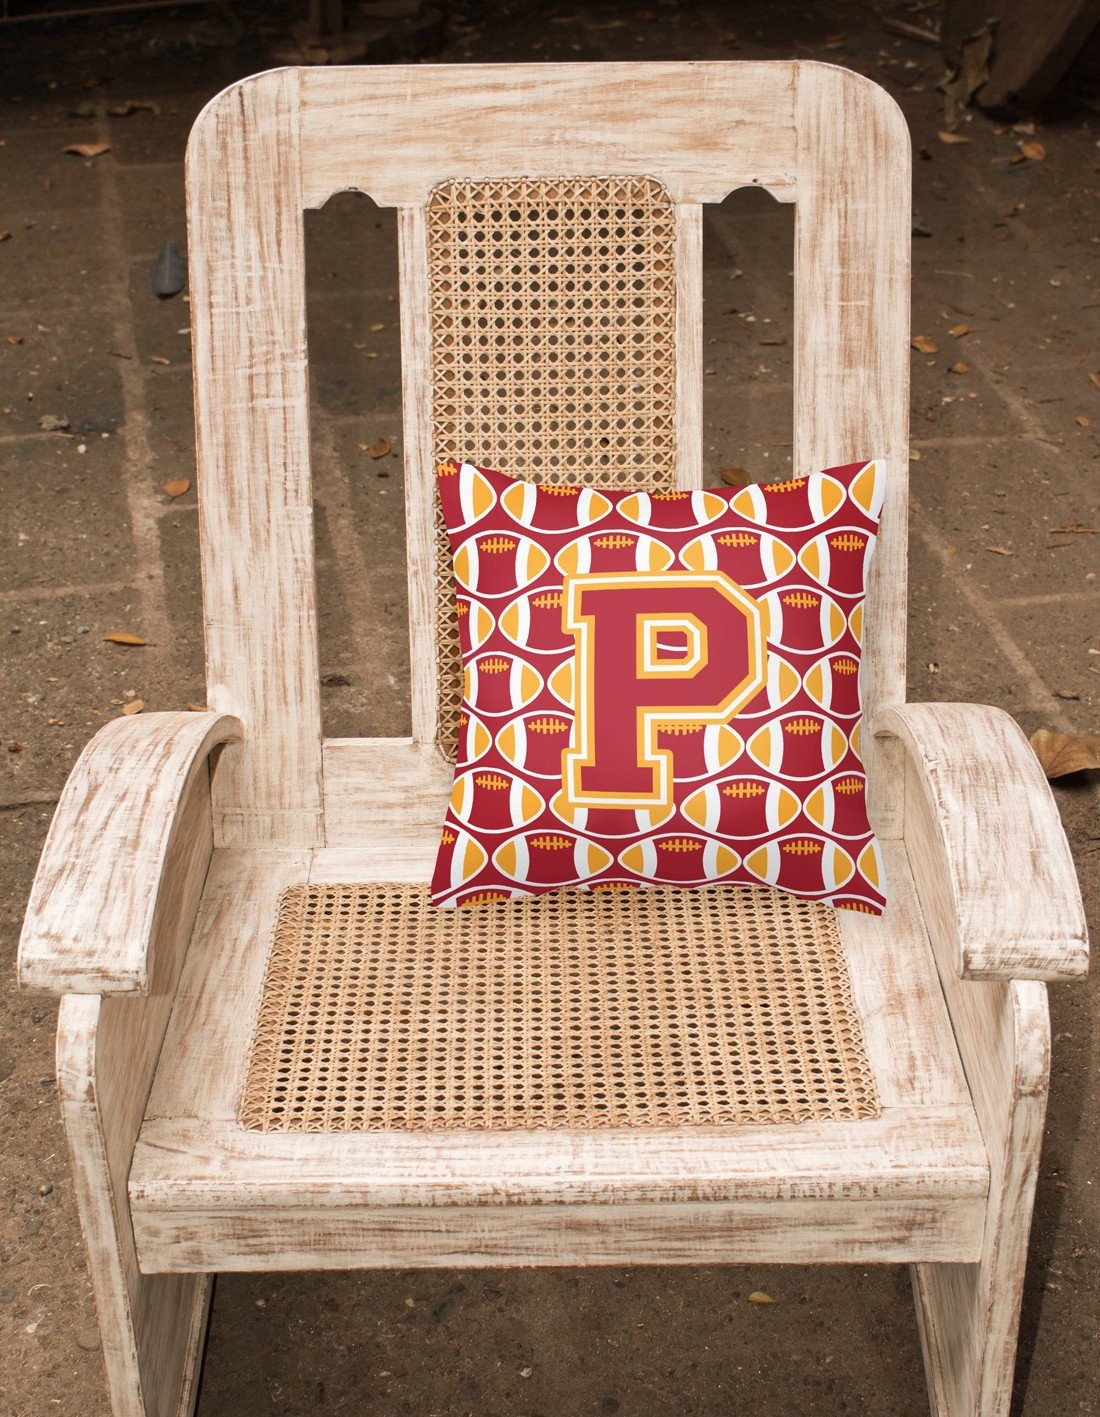 Letter P Football Cardinal and Gold Fabric Decorative Pillow CJ1070-PPW1414 by Caroline's Treasures